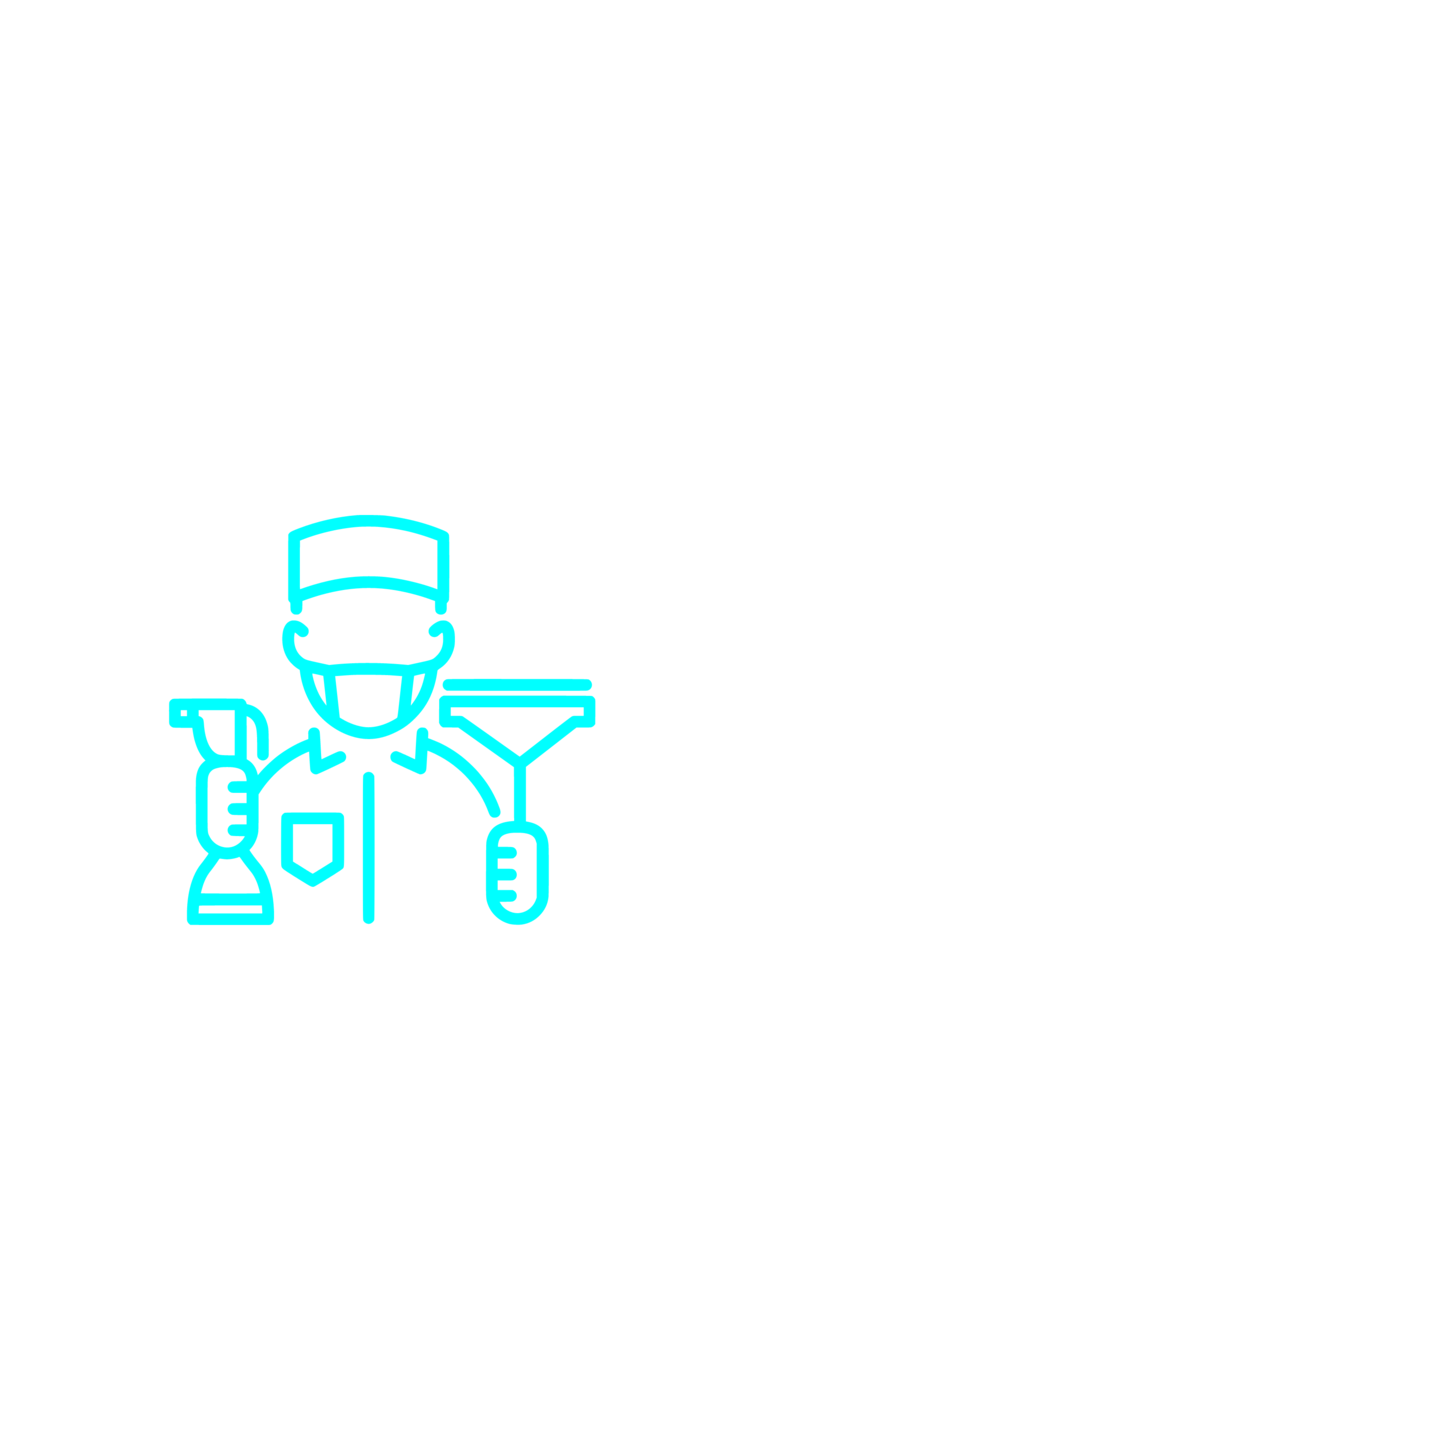 Cleanliness cleaning solutions